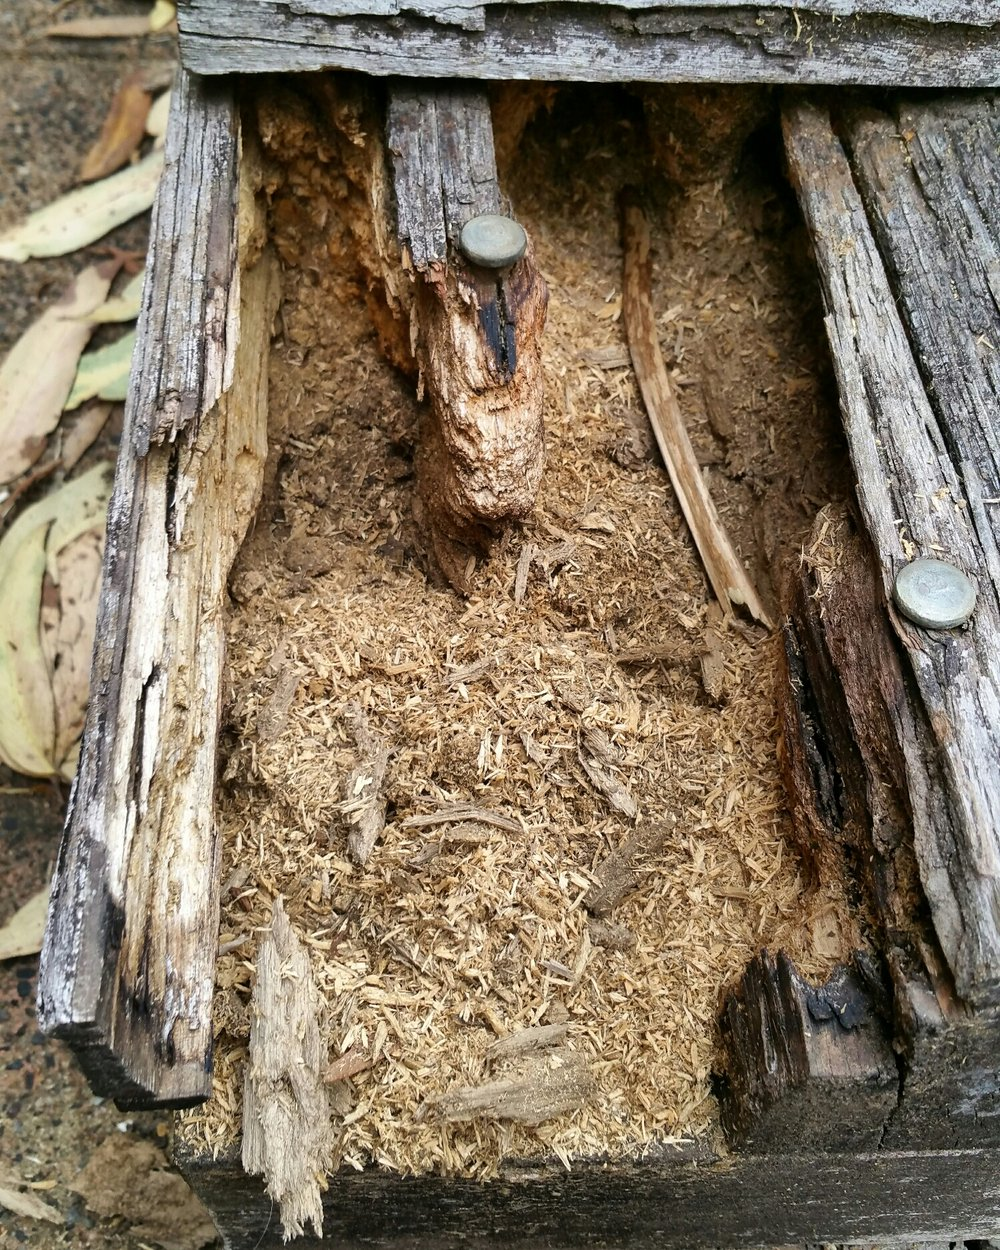 The small shavings of timber are a giveaway that termites didn't eat this. Fungal decay coupled with ants were the culprit.